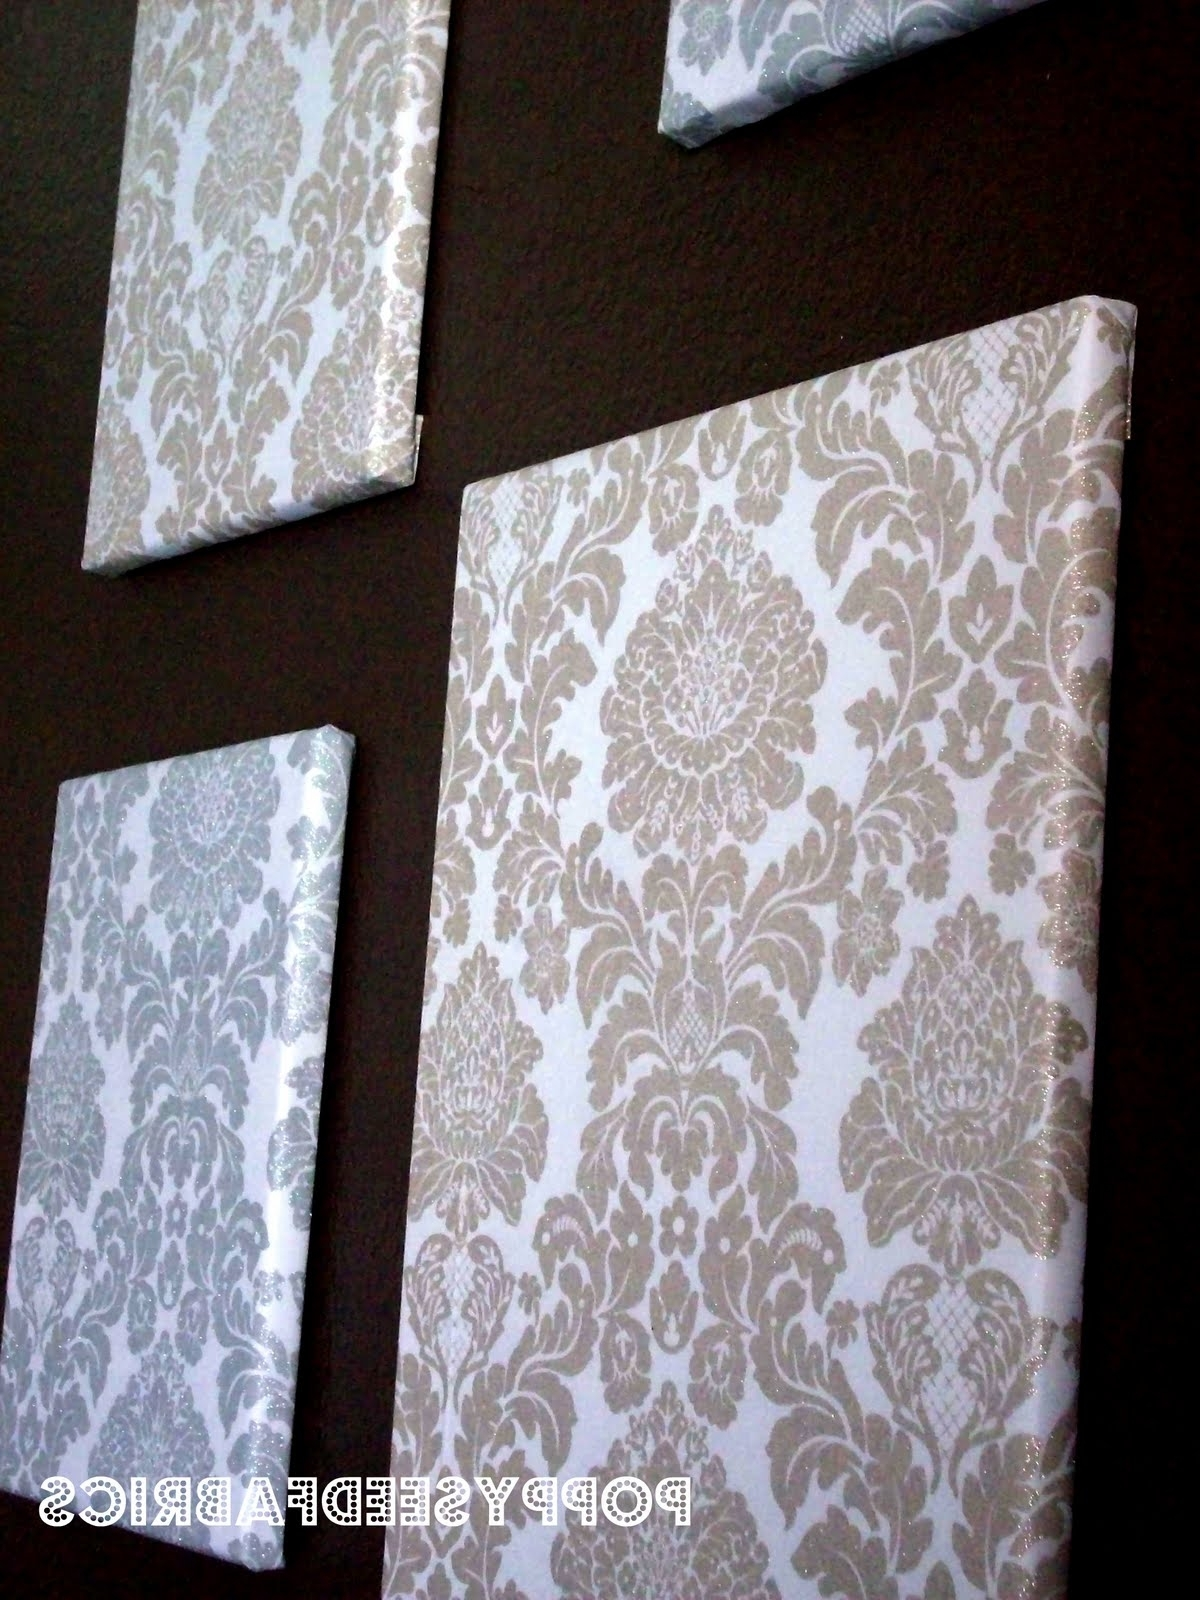 Canvas Wall Art With Fabric Intended For Well Known Poppyseed Fabrics: Fabric Wall Art Tutorial (View 3 of 15)